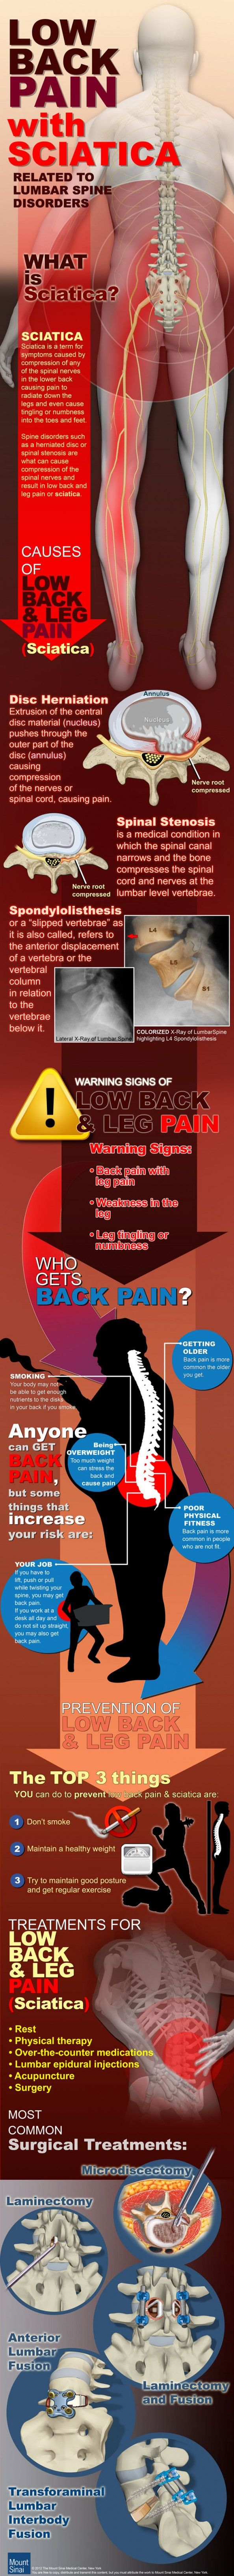 Low Back Pain, Sciatica causes. Many of these issues can be helped by just having proper posture and using a lumbar roll. The Physical Therapy Center of Bristol, a Certified McKenzie Spine Care Clinic, specializes in back pain diagnosis and treatment.  www.ptcbristol.com